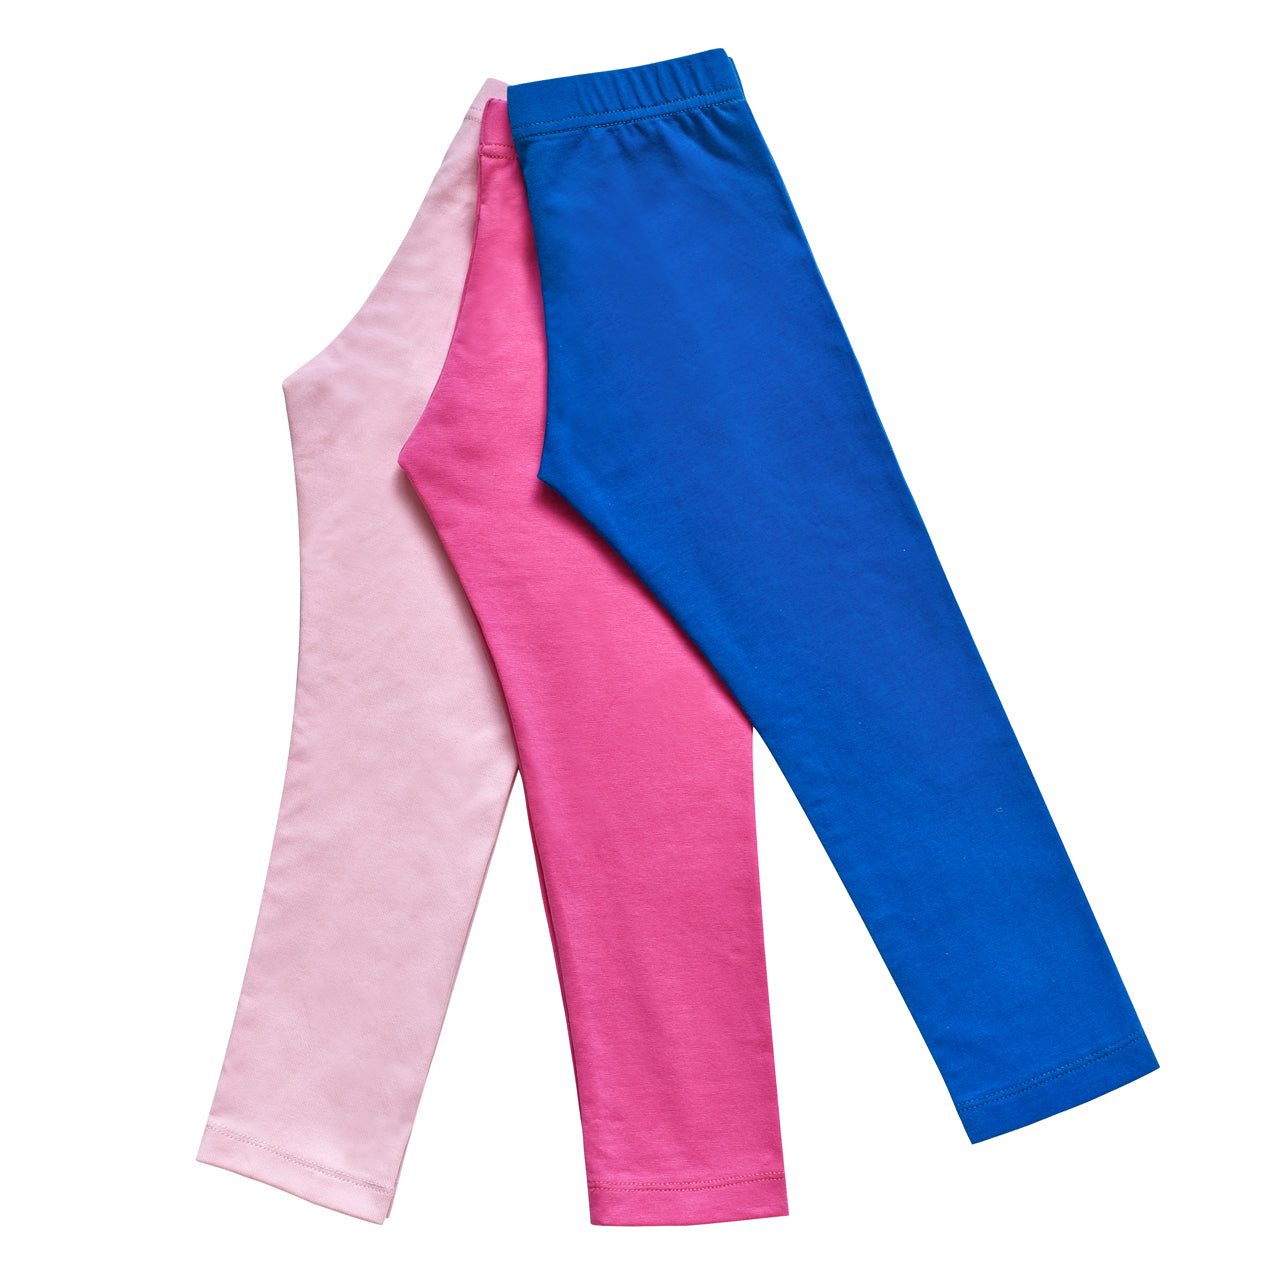 and 3 Cotton Printed Legging Pants Pack Of 6 Indistar Girls 3 Cotton Solid Legging Pants /_Multicolor/_Size-4-5 Years/_714040506161718-IW-P6-26